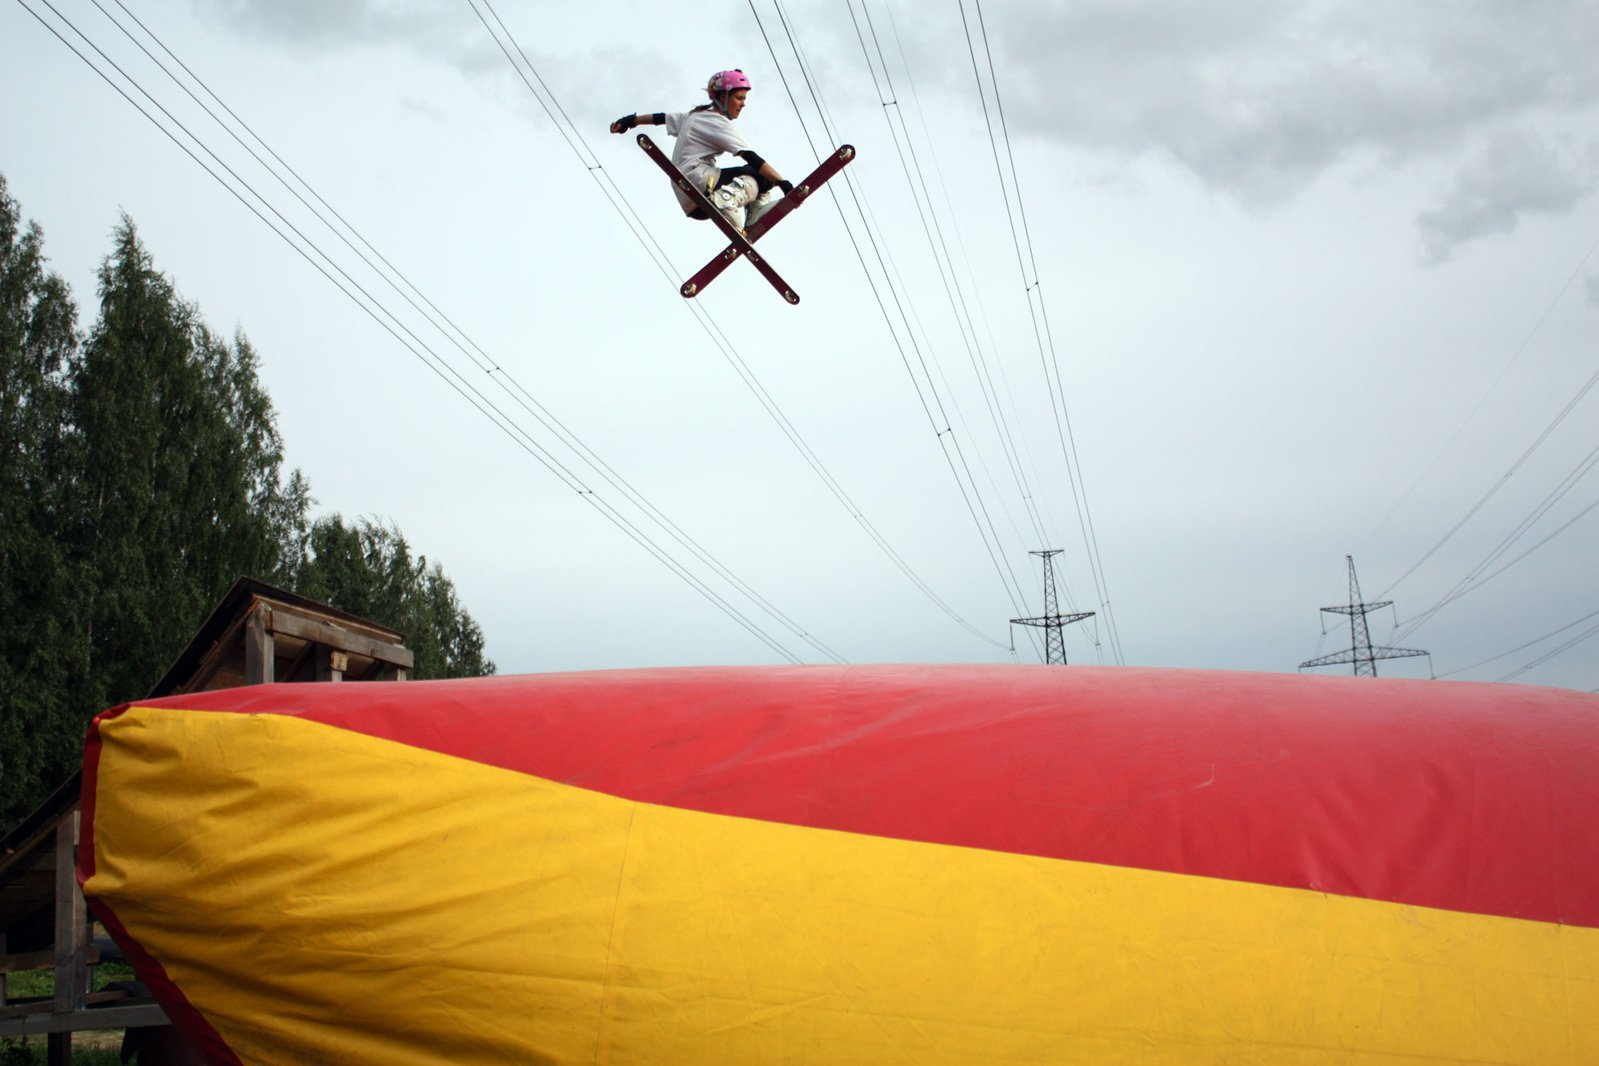 Try our handmade skill-ski 2!!! it's cool!